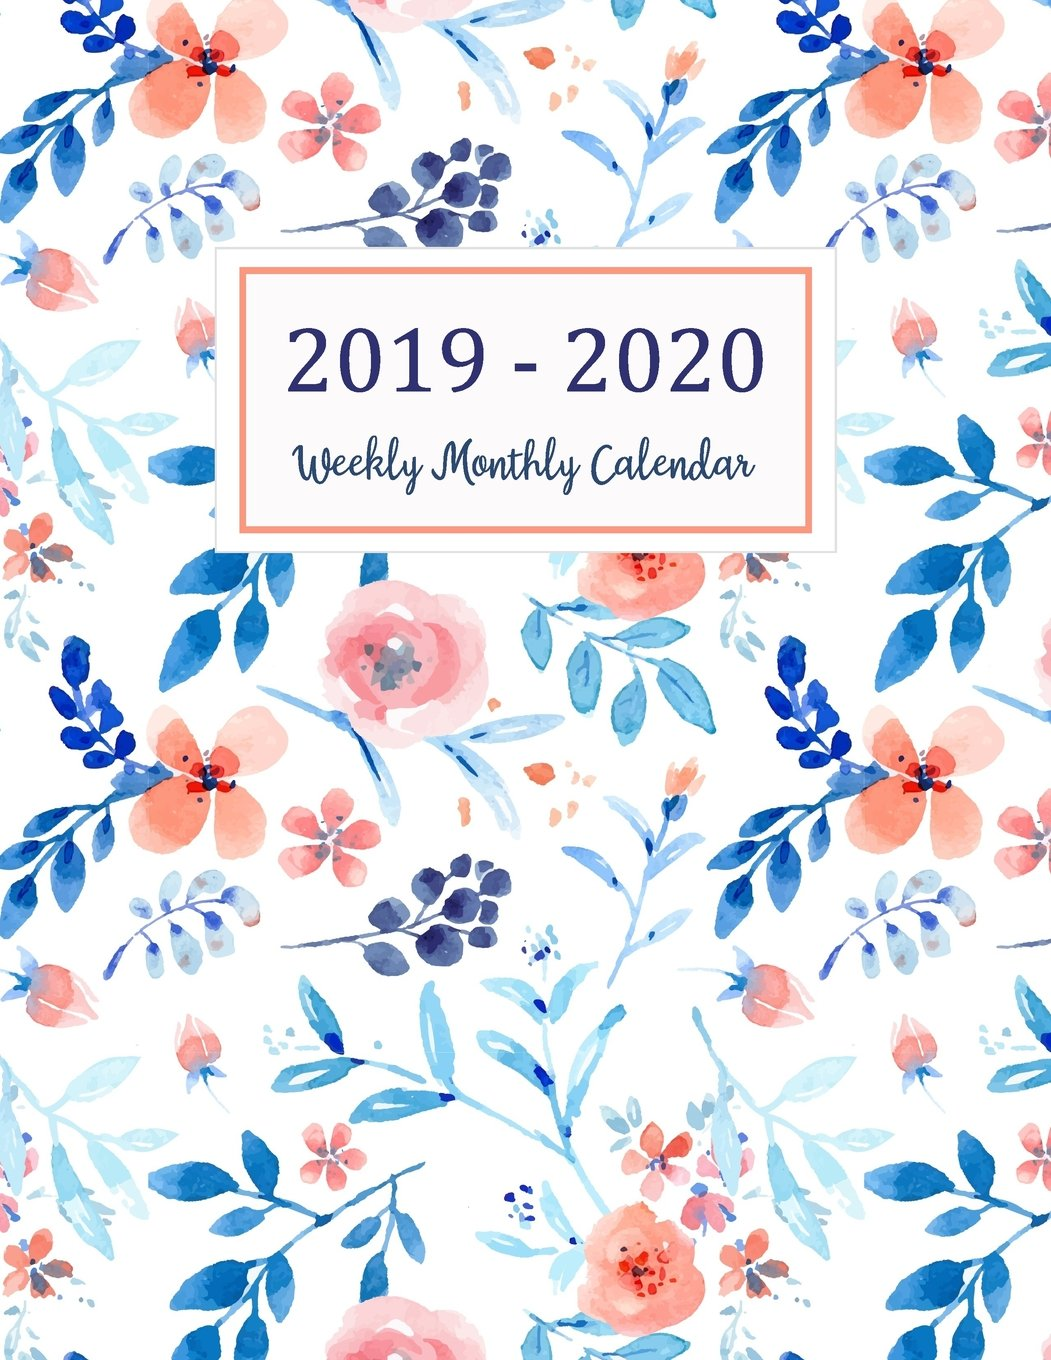 2019-2020 Weekly Monthly Calendar: Two Years - Daily Weekly ...